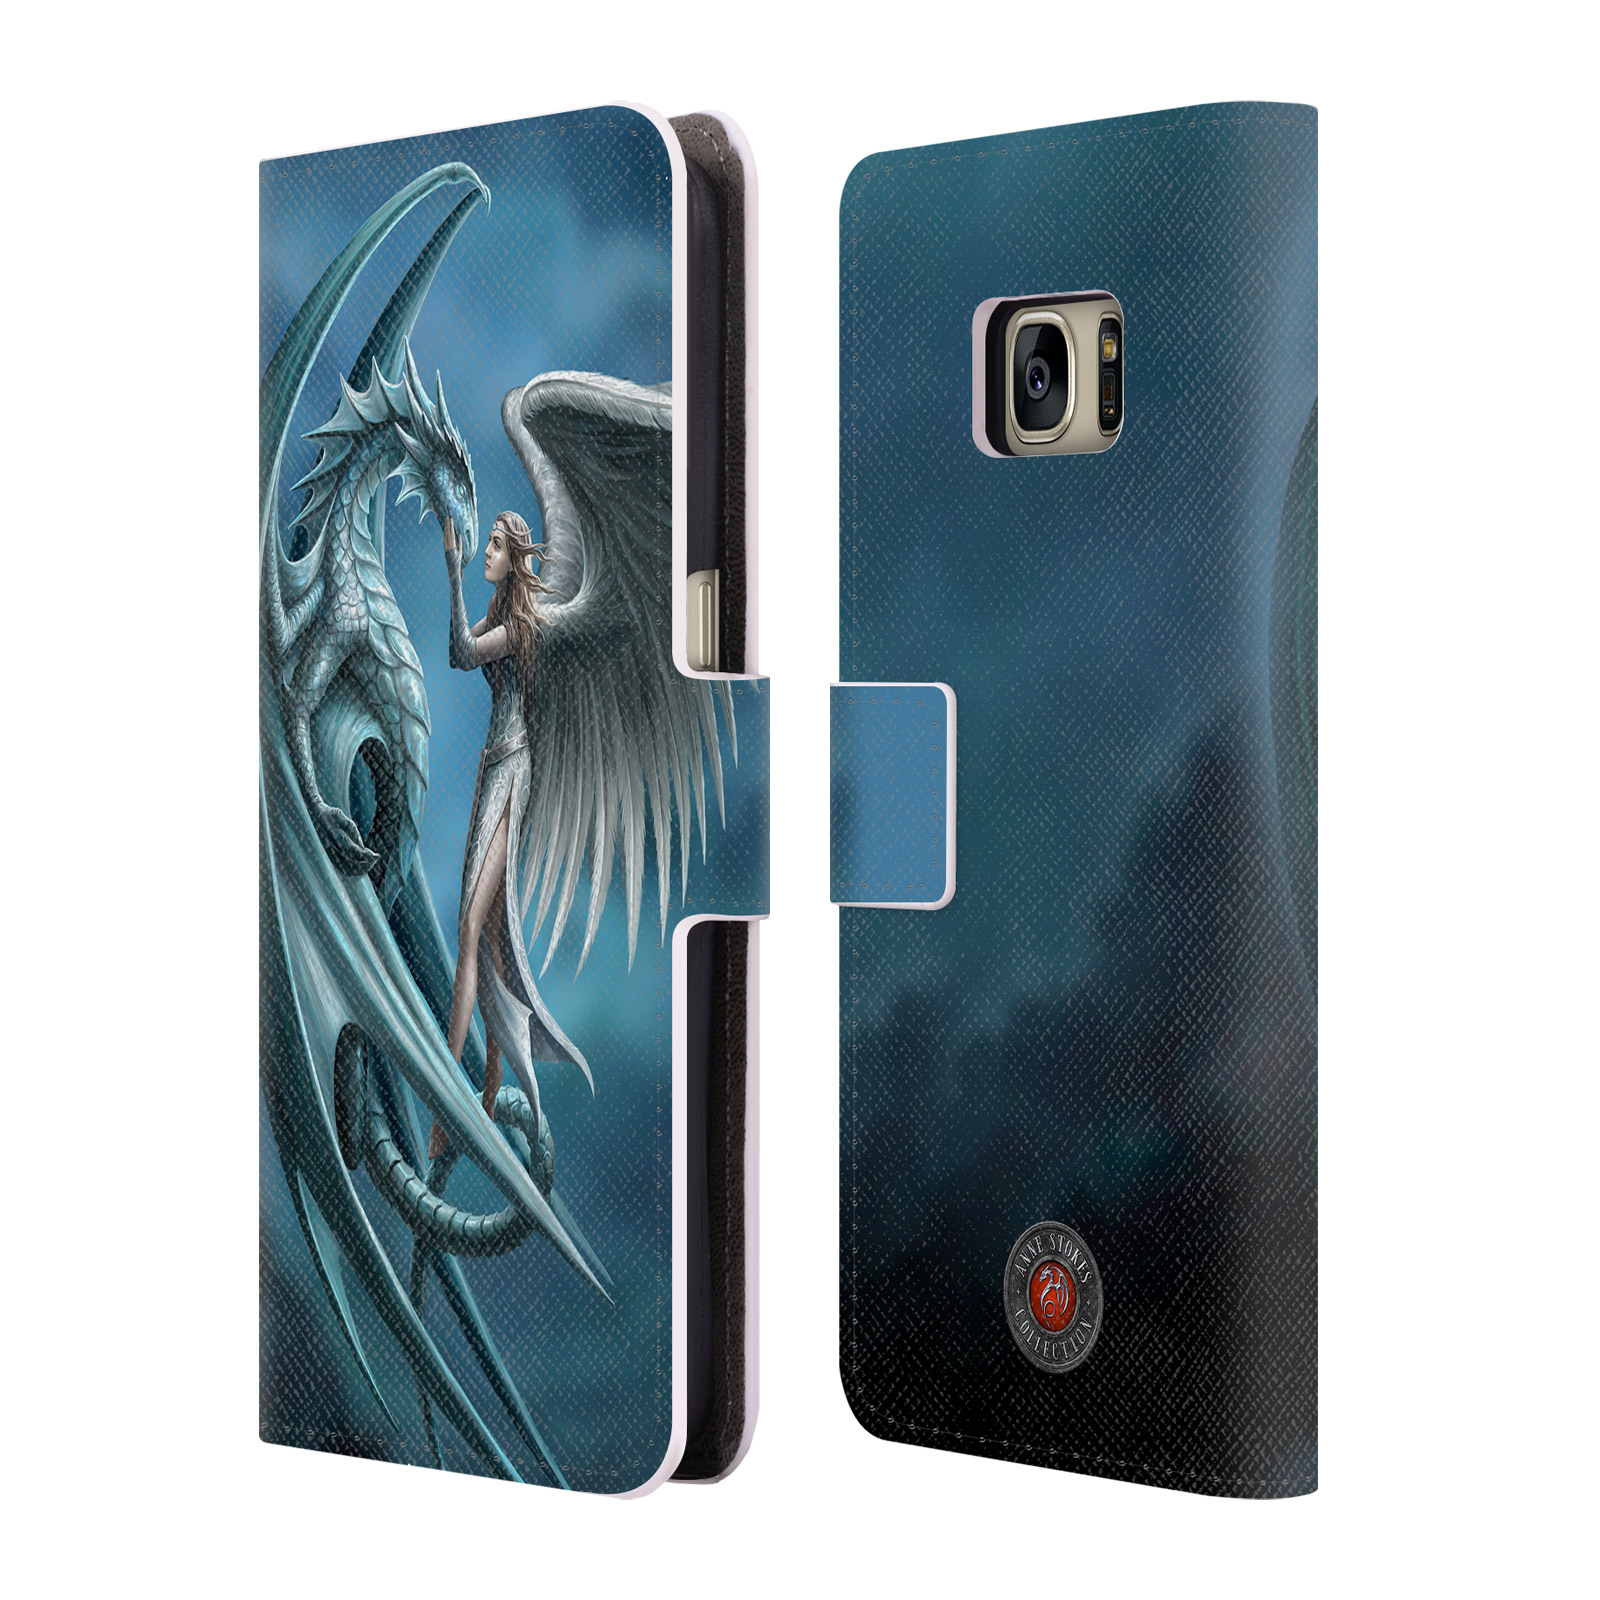 OFFICIAL ANNE STOKES DRAGON FRIENDSHIP LEATHER BOOK WALLET CASE COVER FOR SAMSUNG PHONES 1